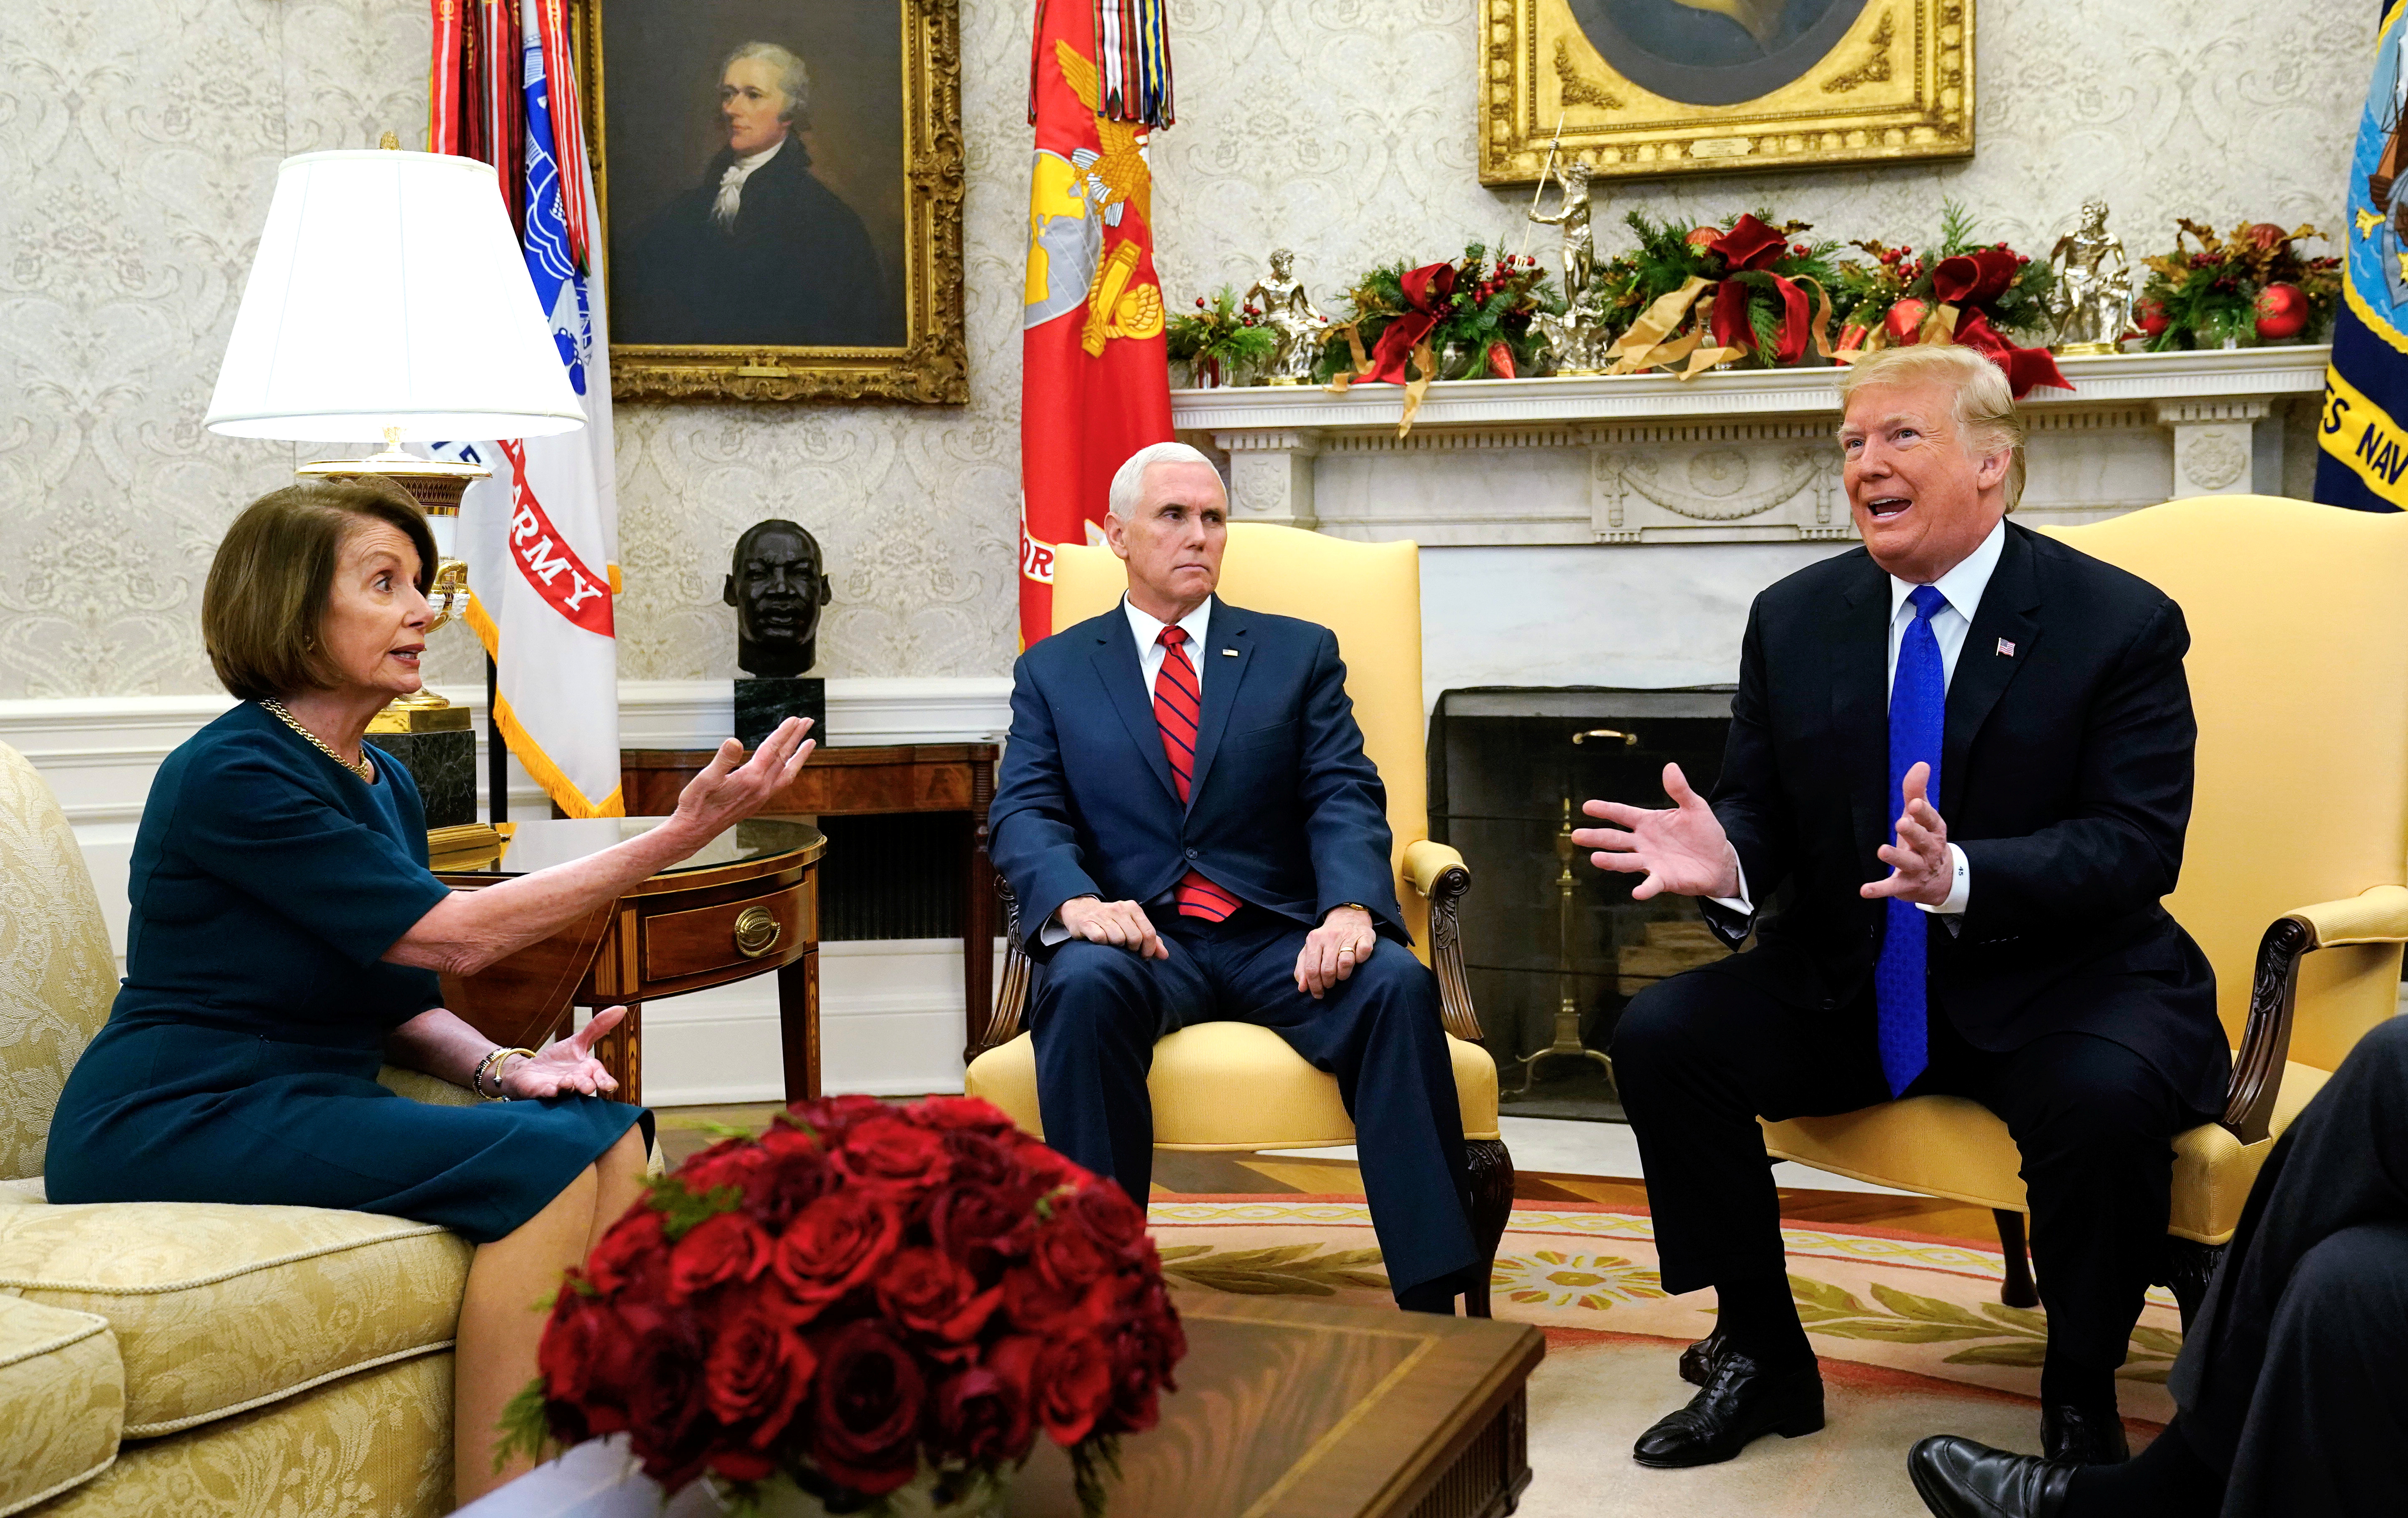 U.S. House Speaker designate Nancy Pelosi (D-CA) speaks with Vice President Mike Pence and U.S. President Donald Trump as they meet with her and Senate Minority Leader Chuck Schumer (D-NY) in the Oval Office at the White House in Washington, U.S., December 11, 2018. REUTERS/Kevin Lamarque